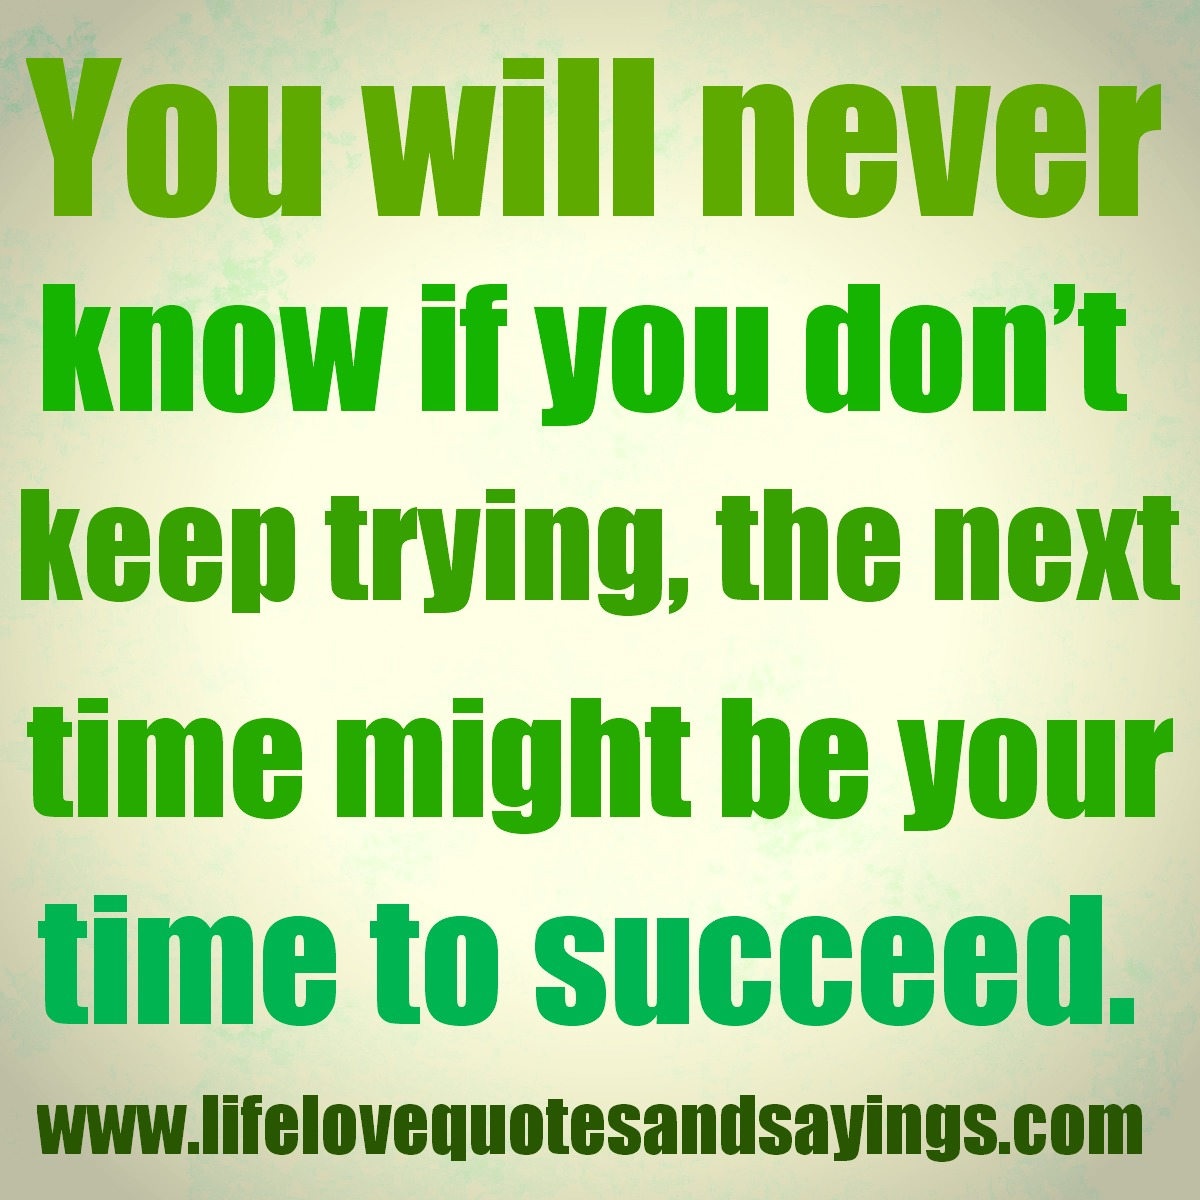 Succeeding Quotes Quotes About Succeeding And Trying 67 Quotes